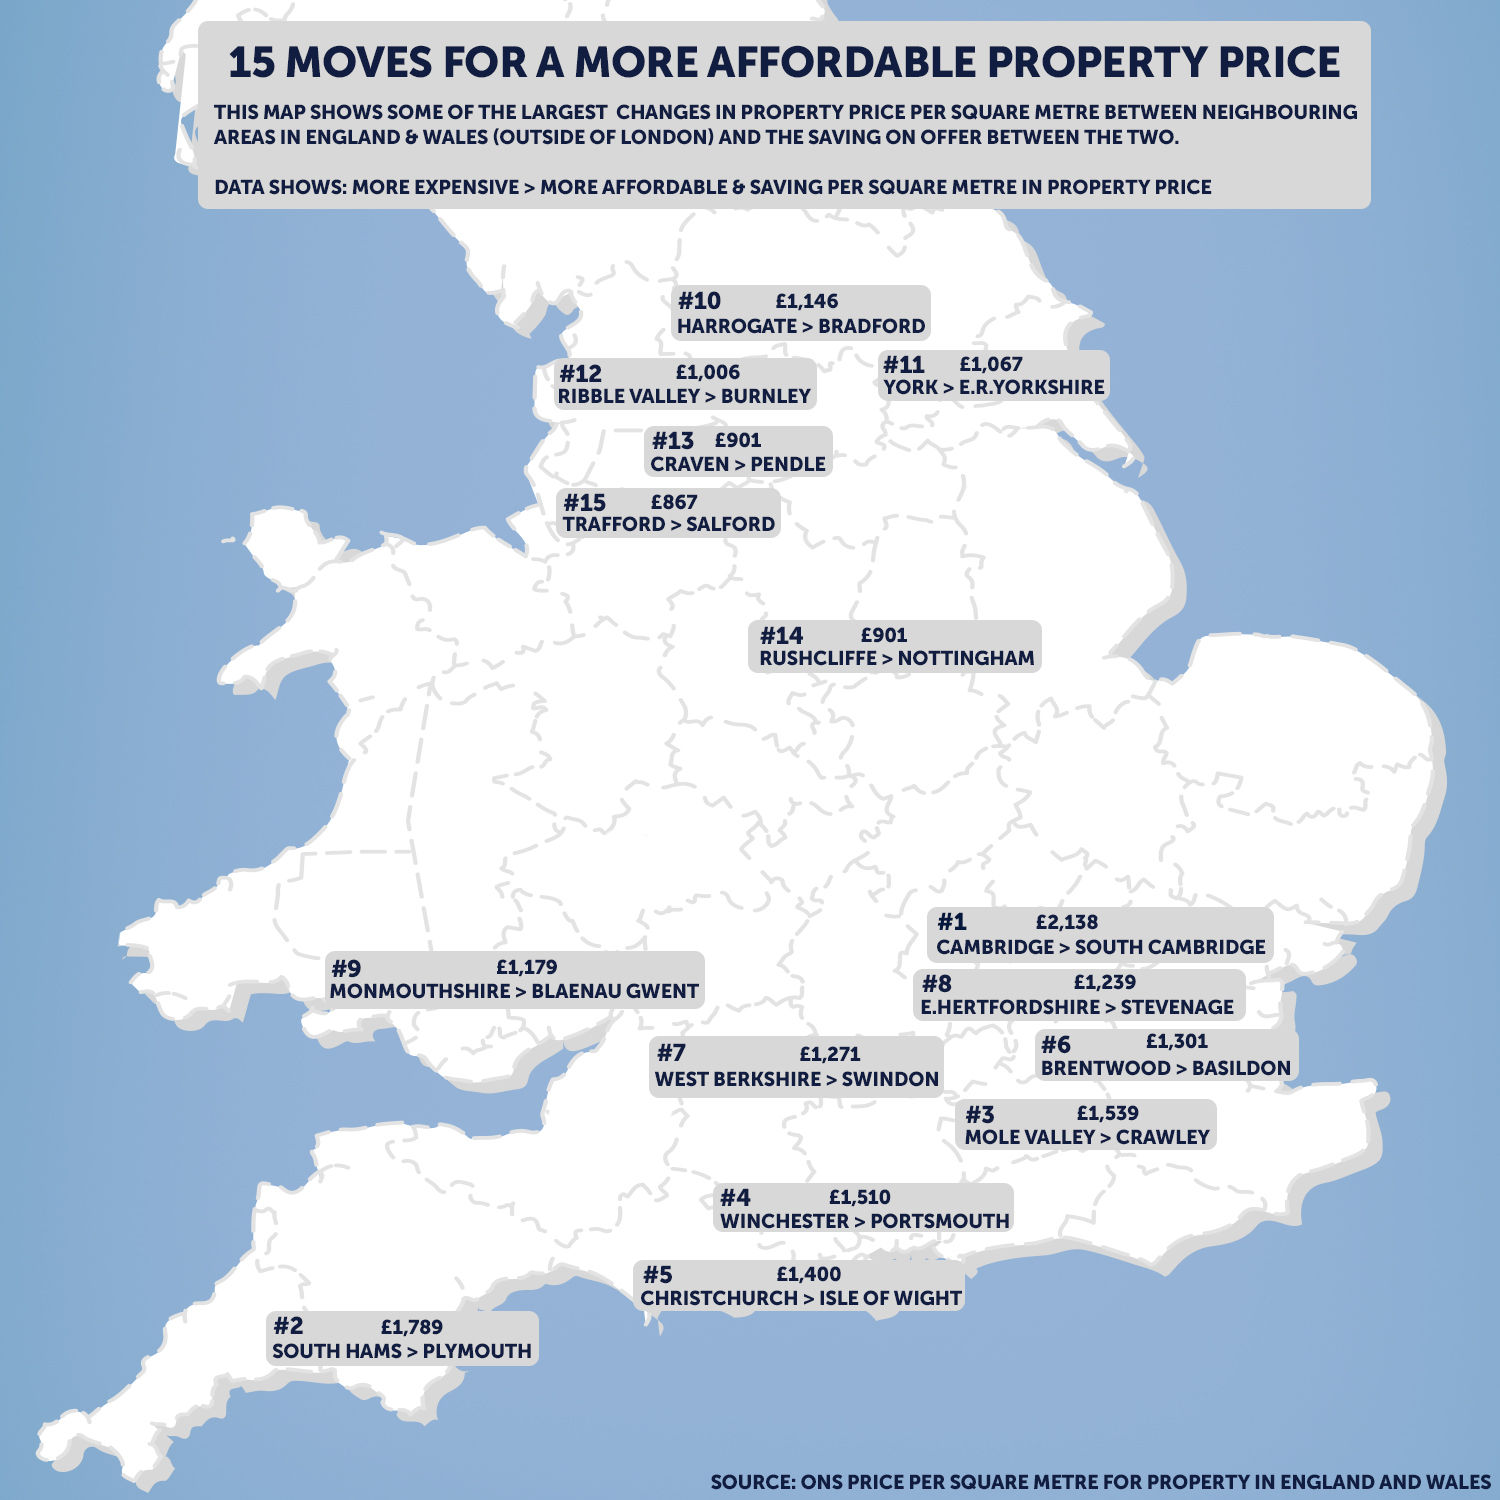 Neighbour Property Price Drops: Where You Can Move Next Door for A More Affordable Foot on the Ladder